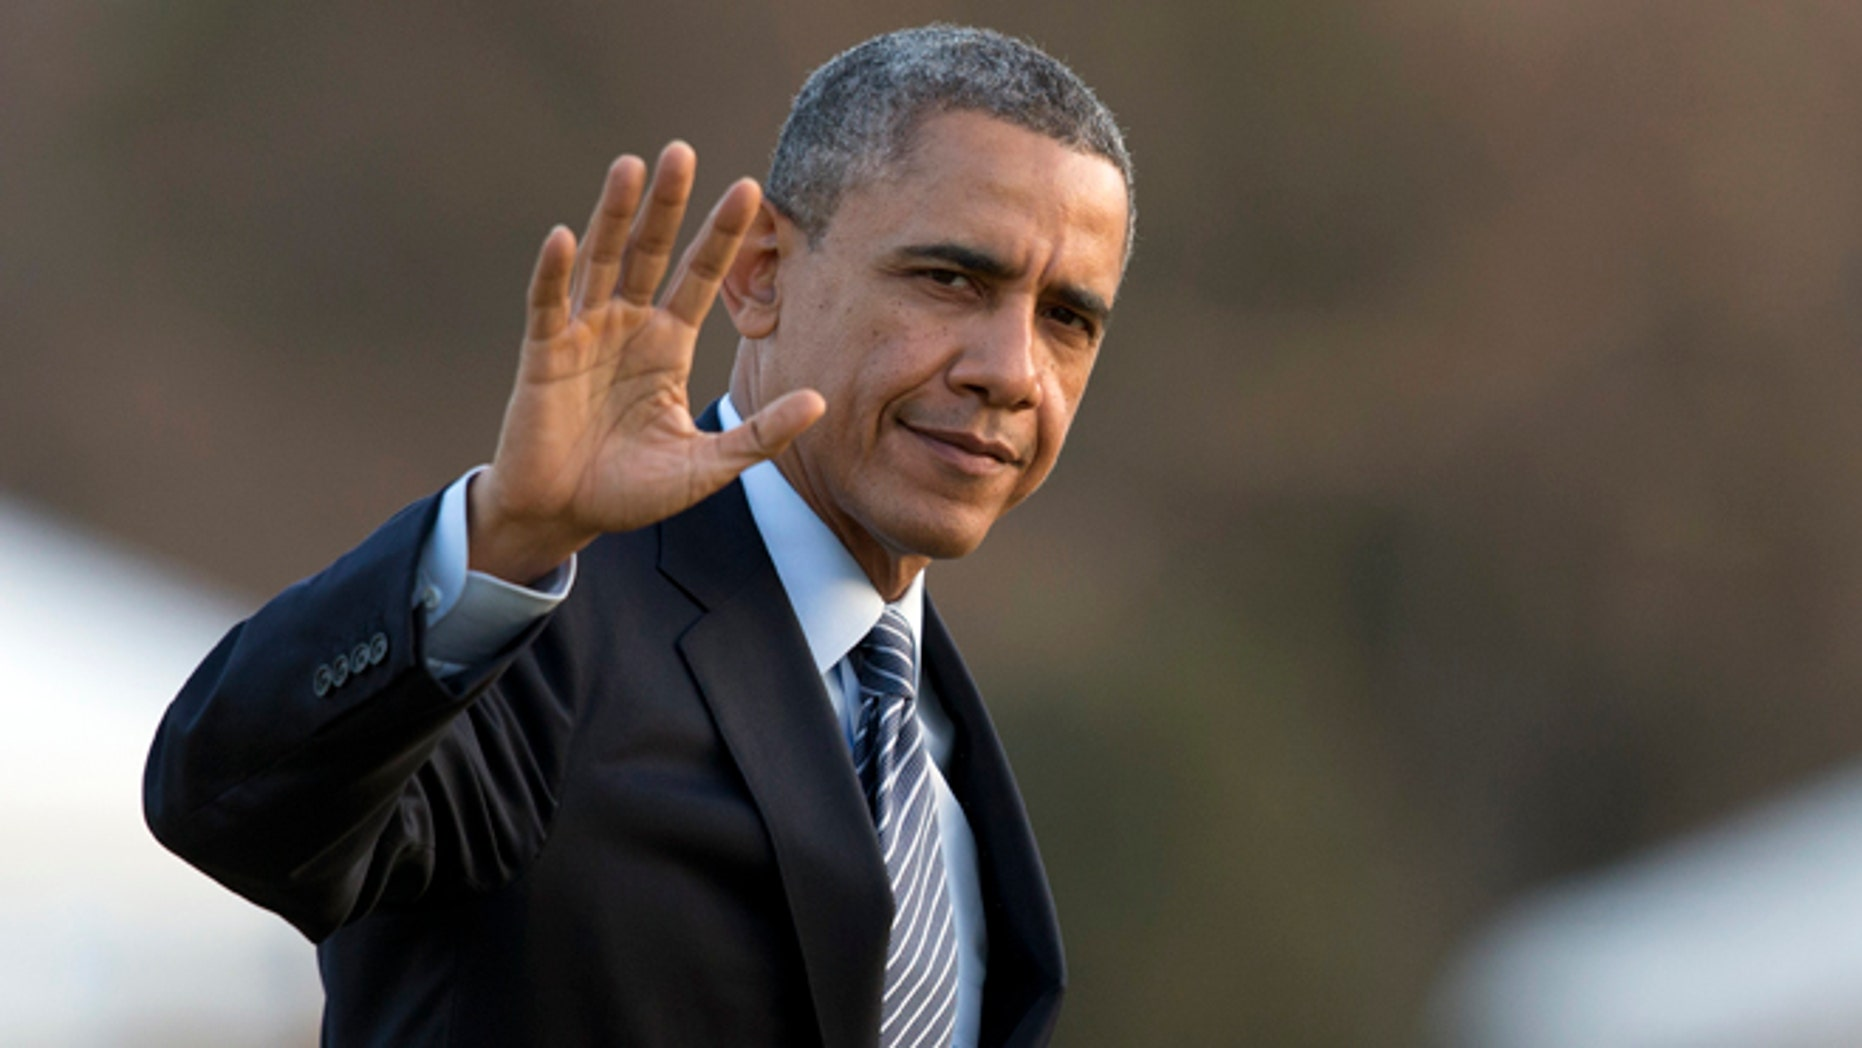 Feb. 7, 2014: President Obama waves as he arrives at the White House.